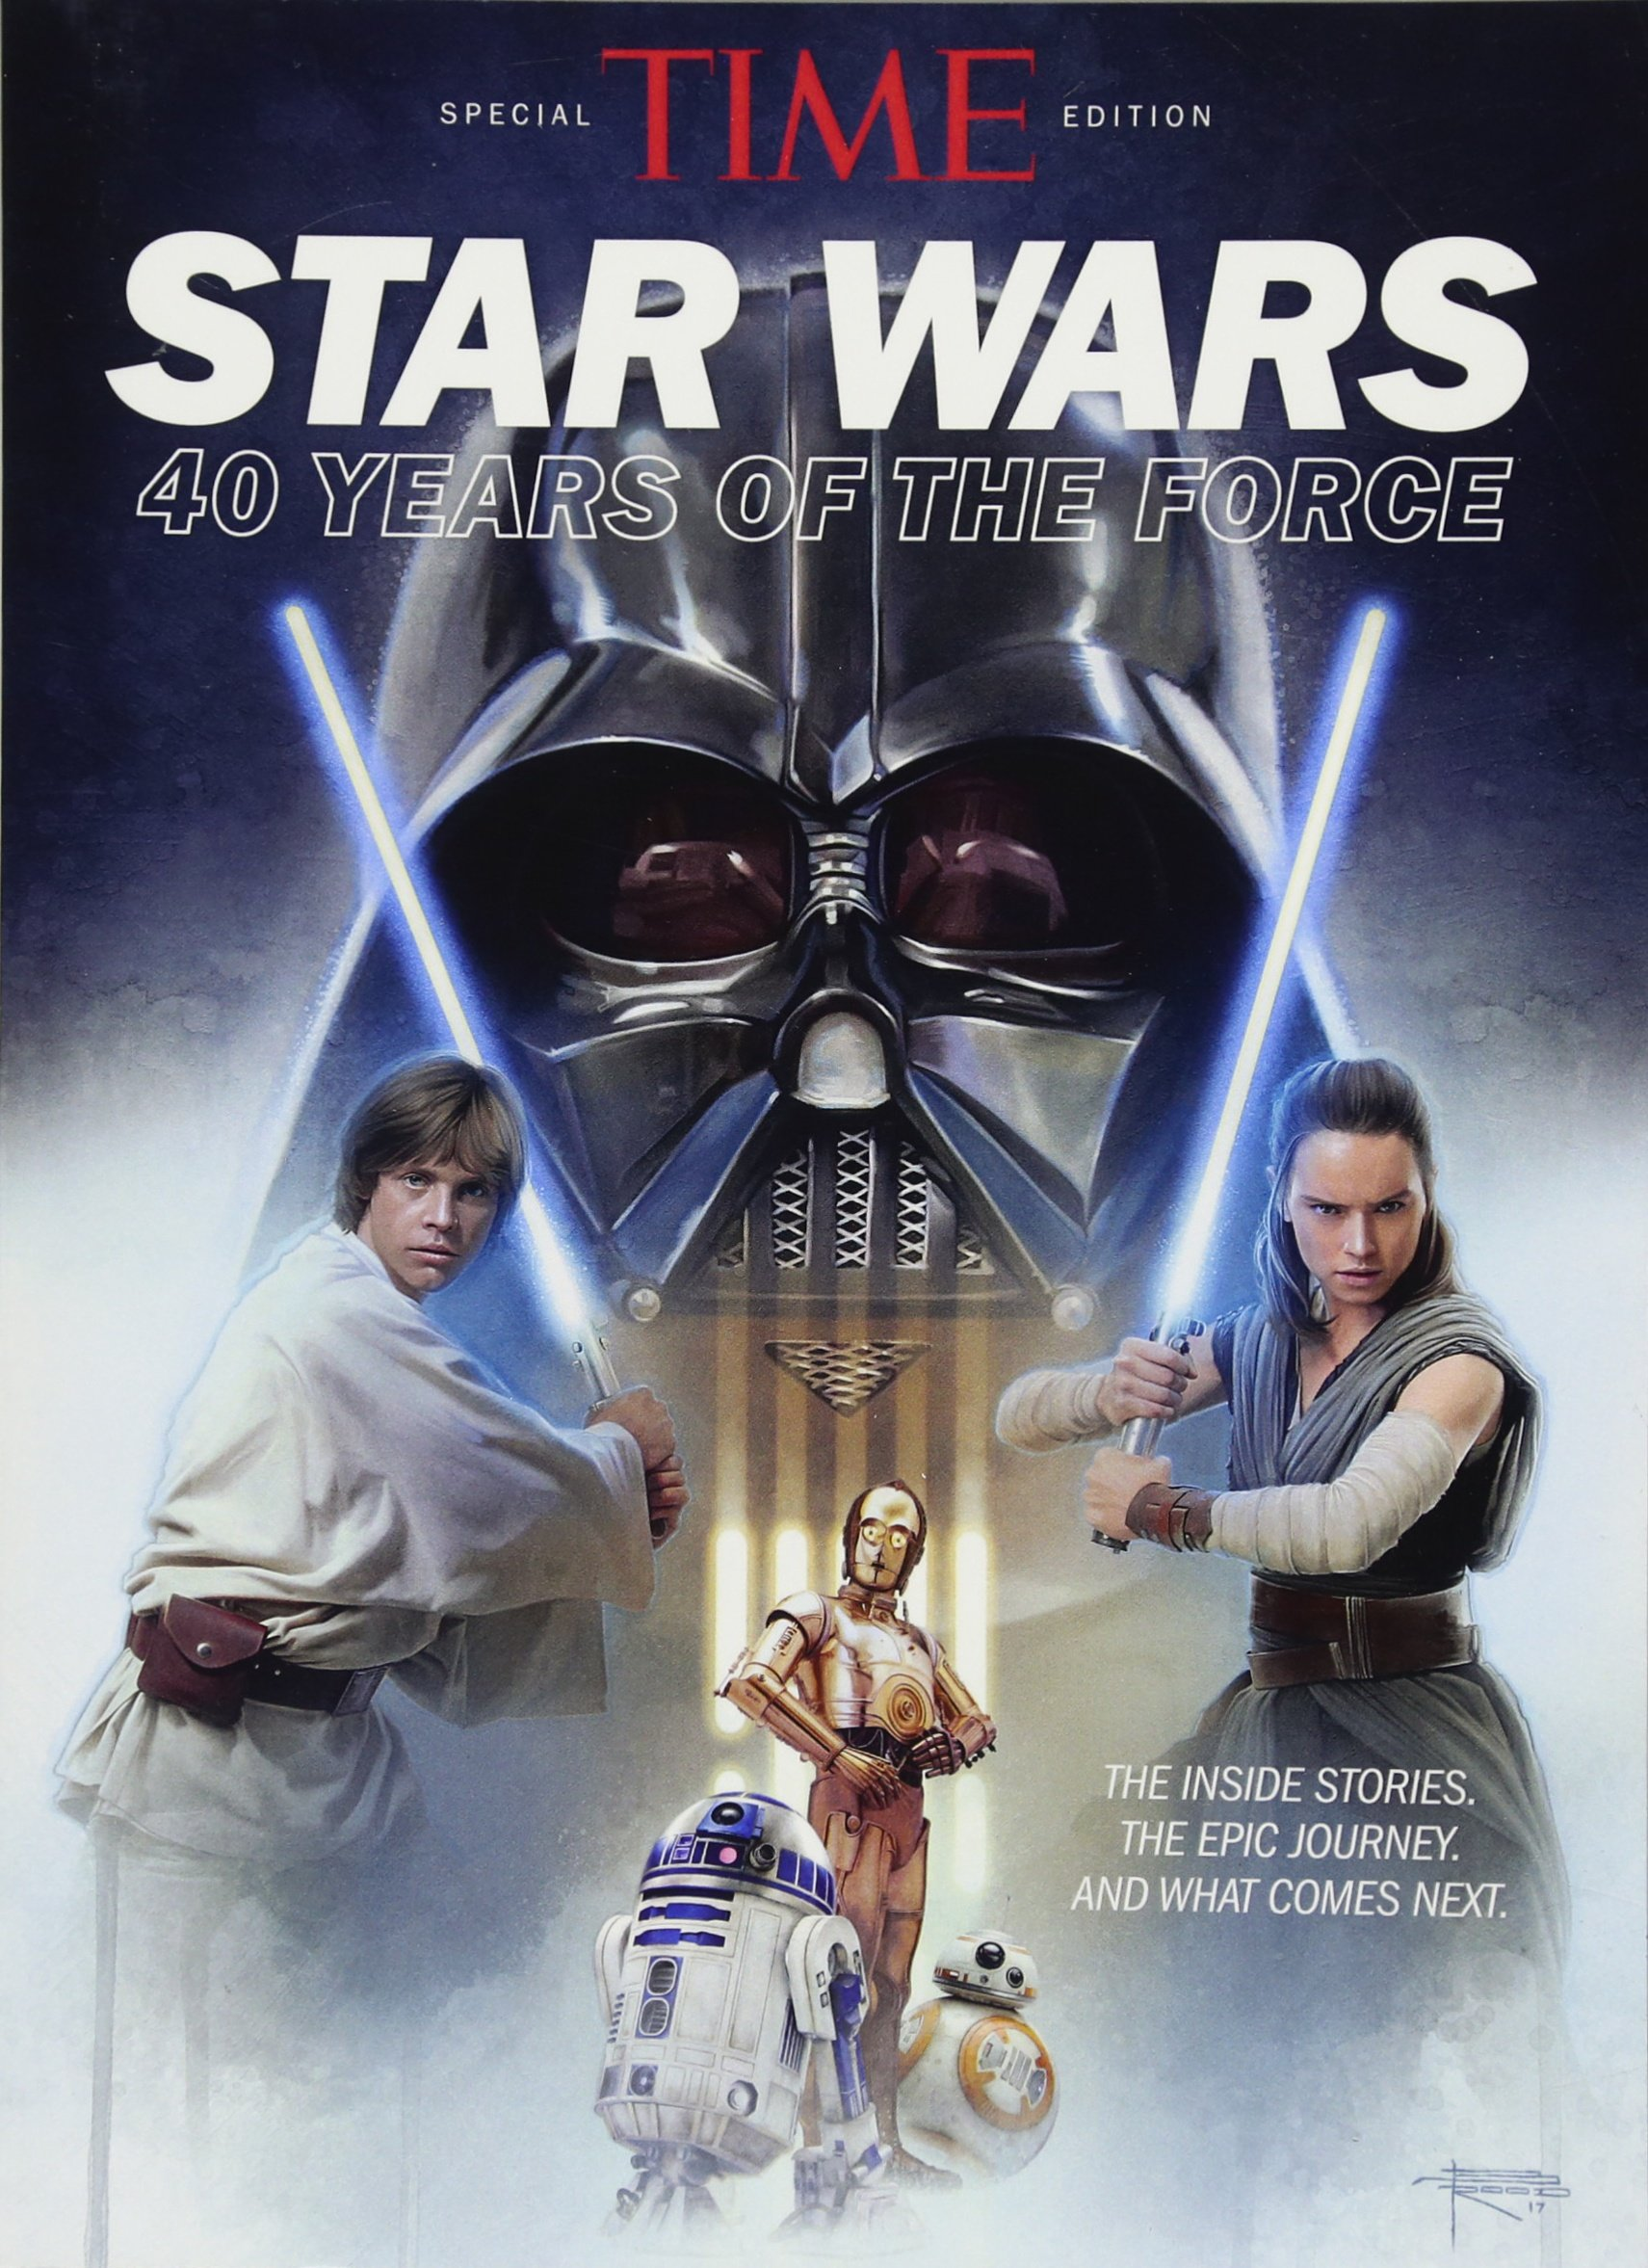 Star Wars: 40 Years of the Force (Time Special Edition)